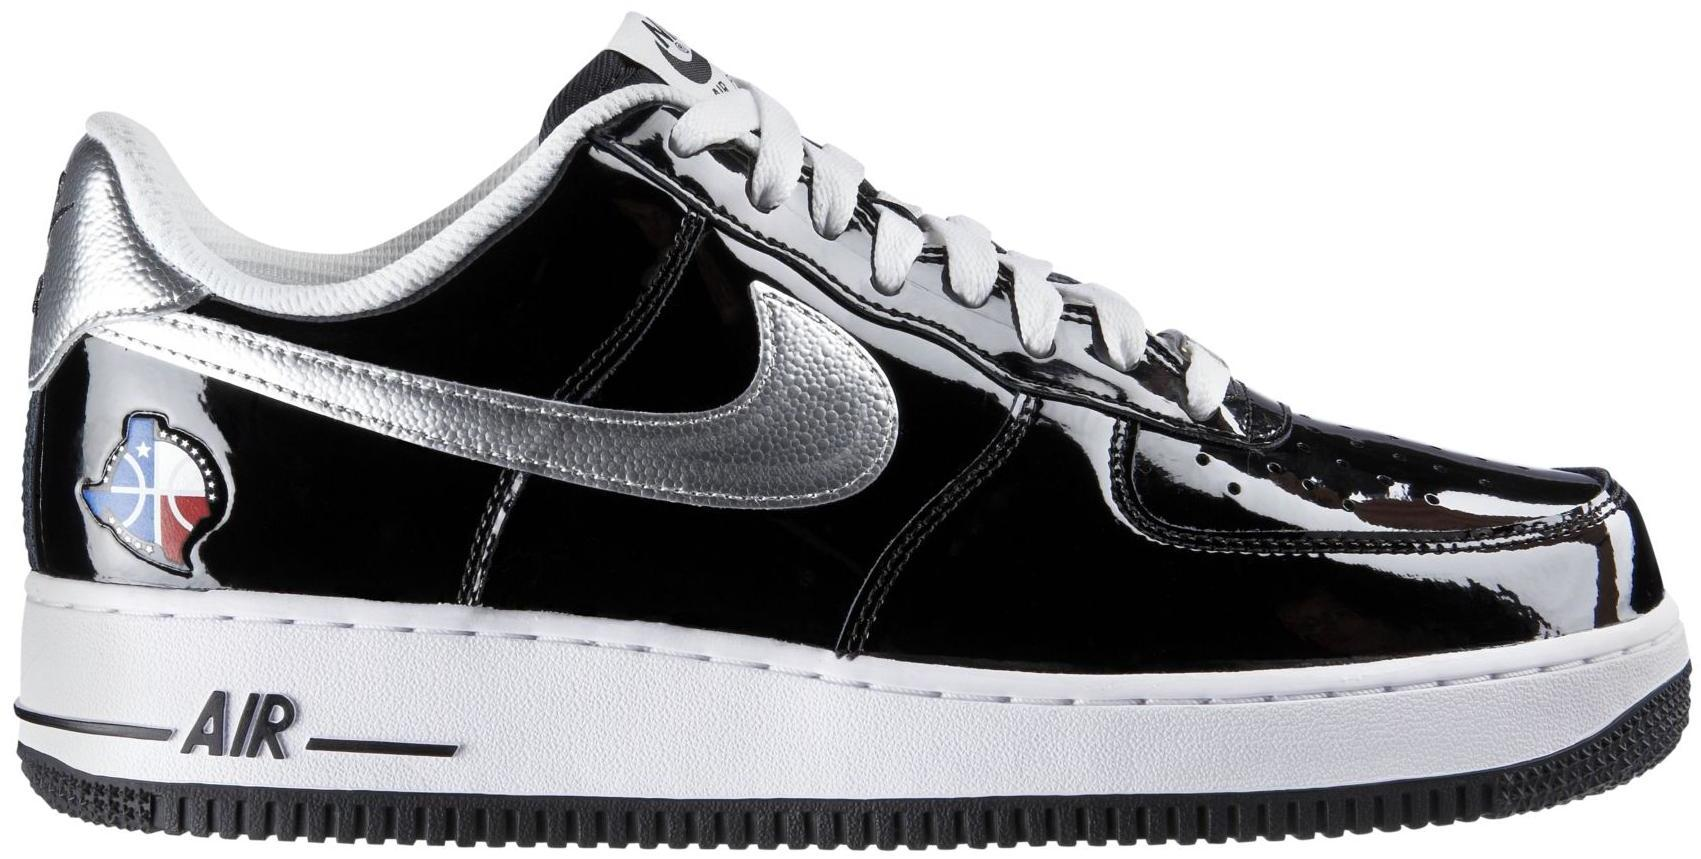 Nike Air Force 1 Low All Star (2010